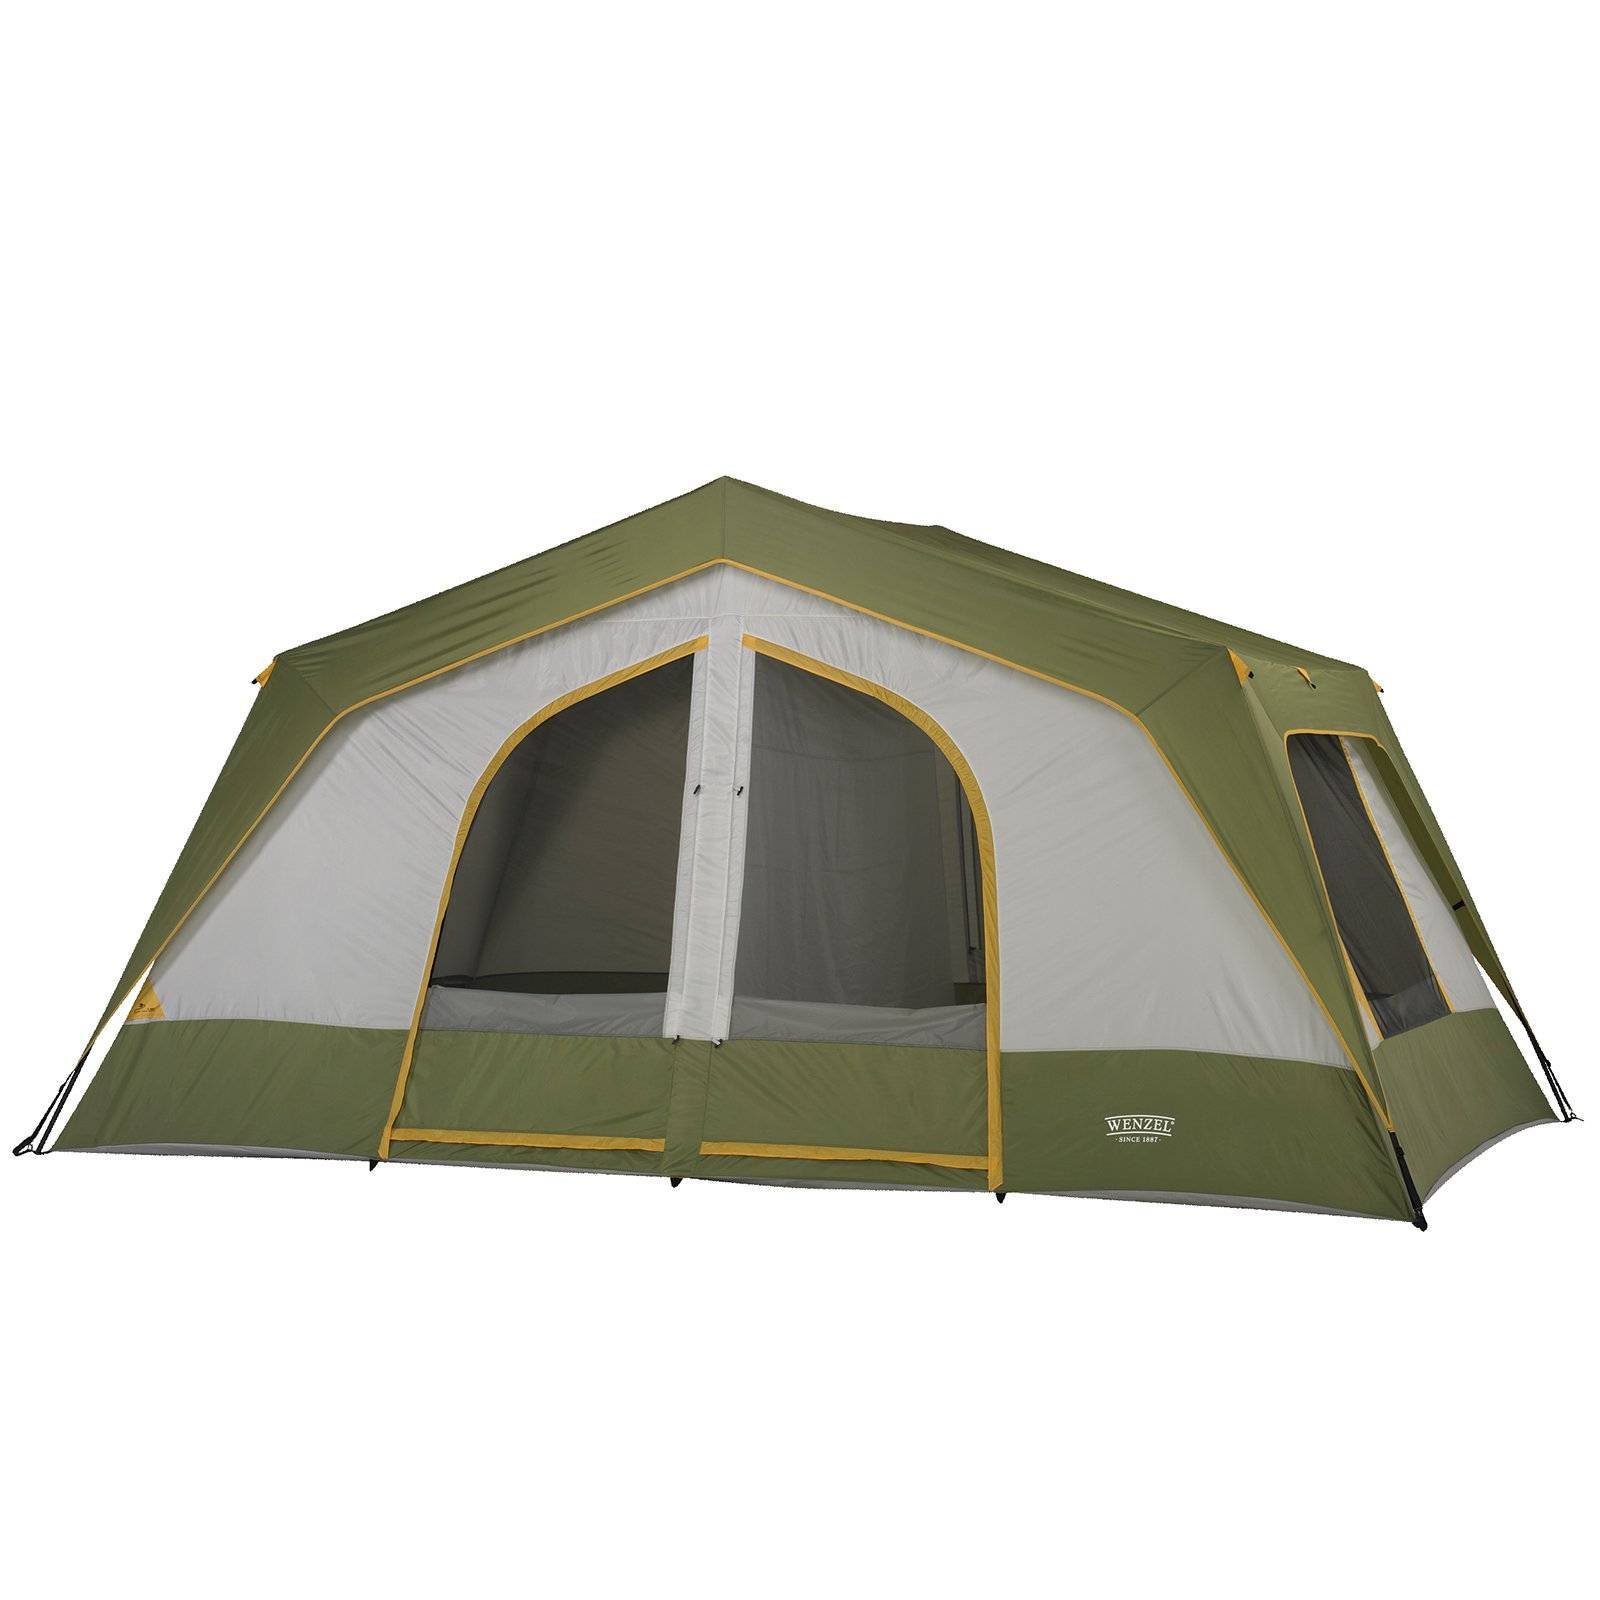 Wenzel 13' x 9' Vacation Lodge Medium 7-Person Tent With ...